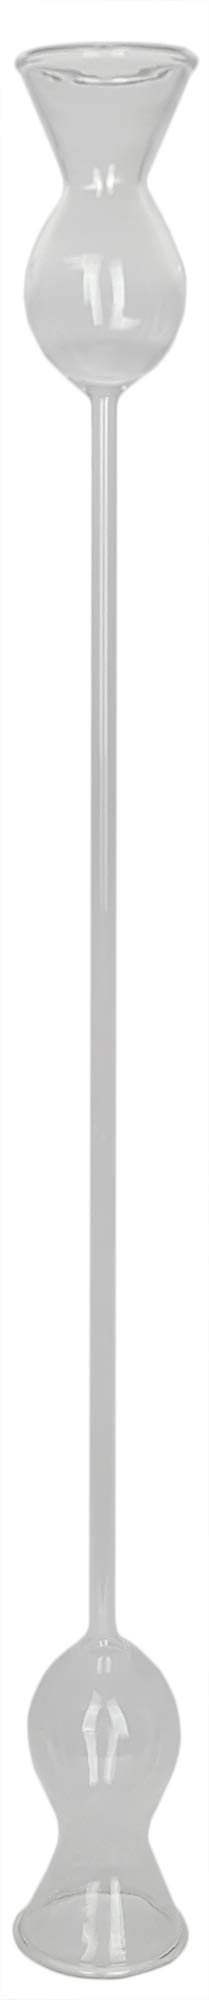 Double Thistle Tube, Pack of 10 by GSC